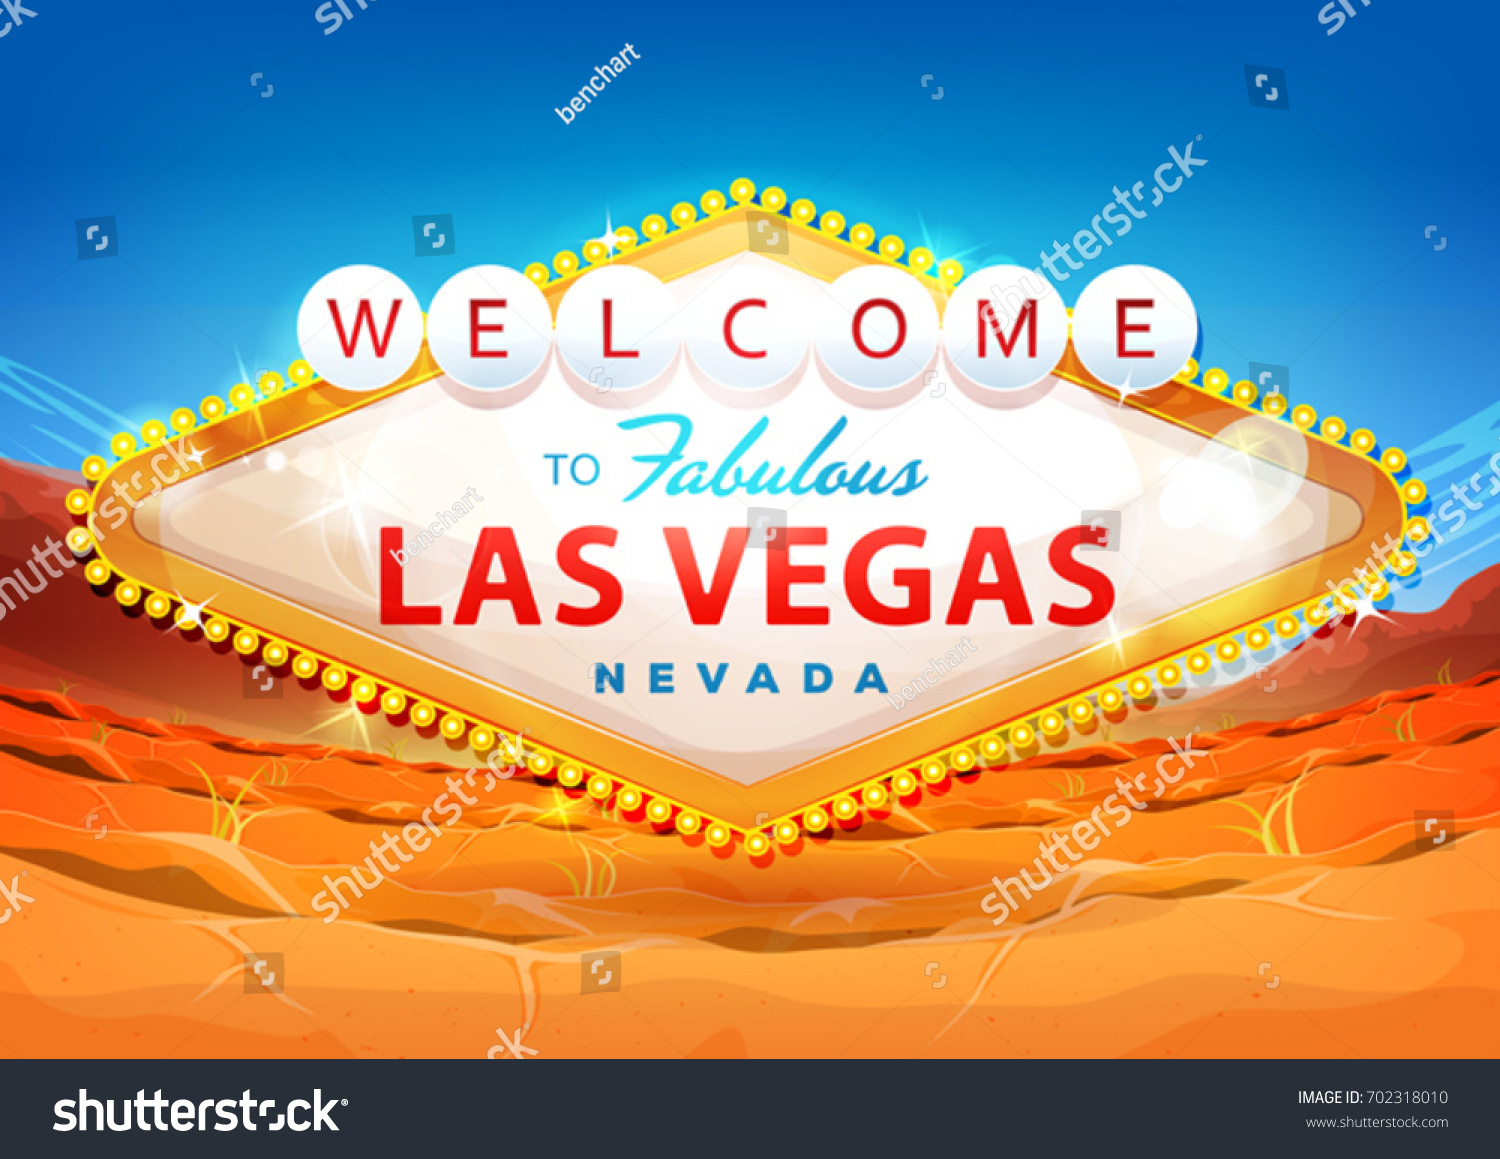 Welcome Las Vegas Sign On Desert Stock Vector (Royalty Free) 702318010